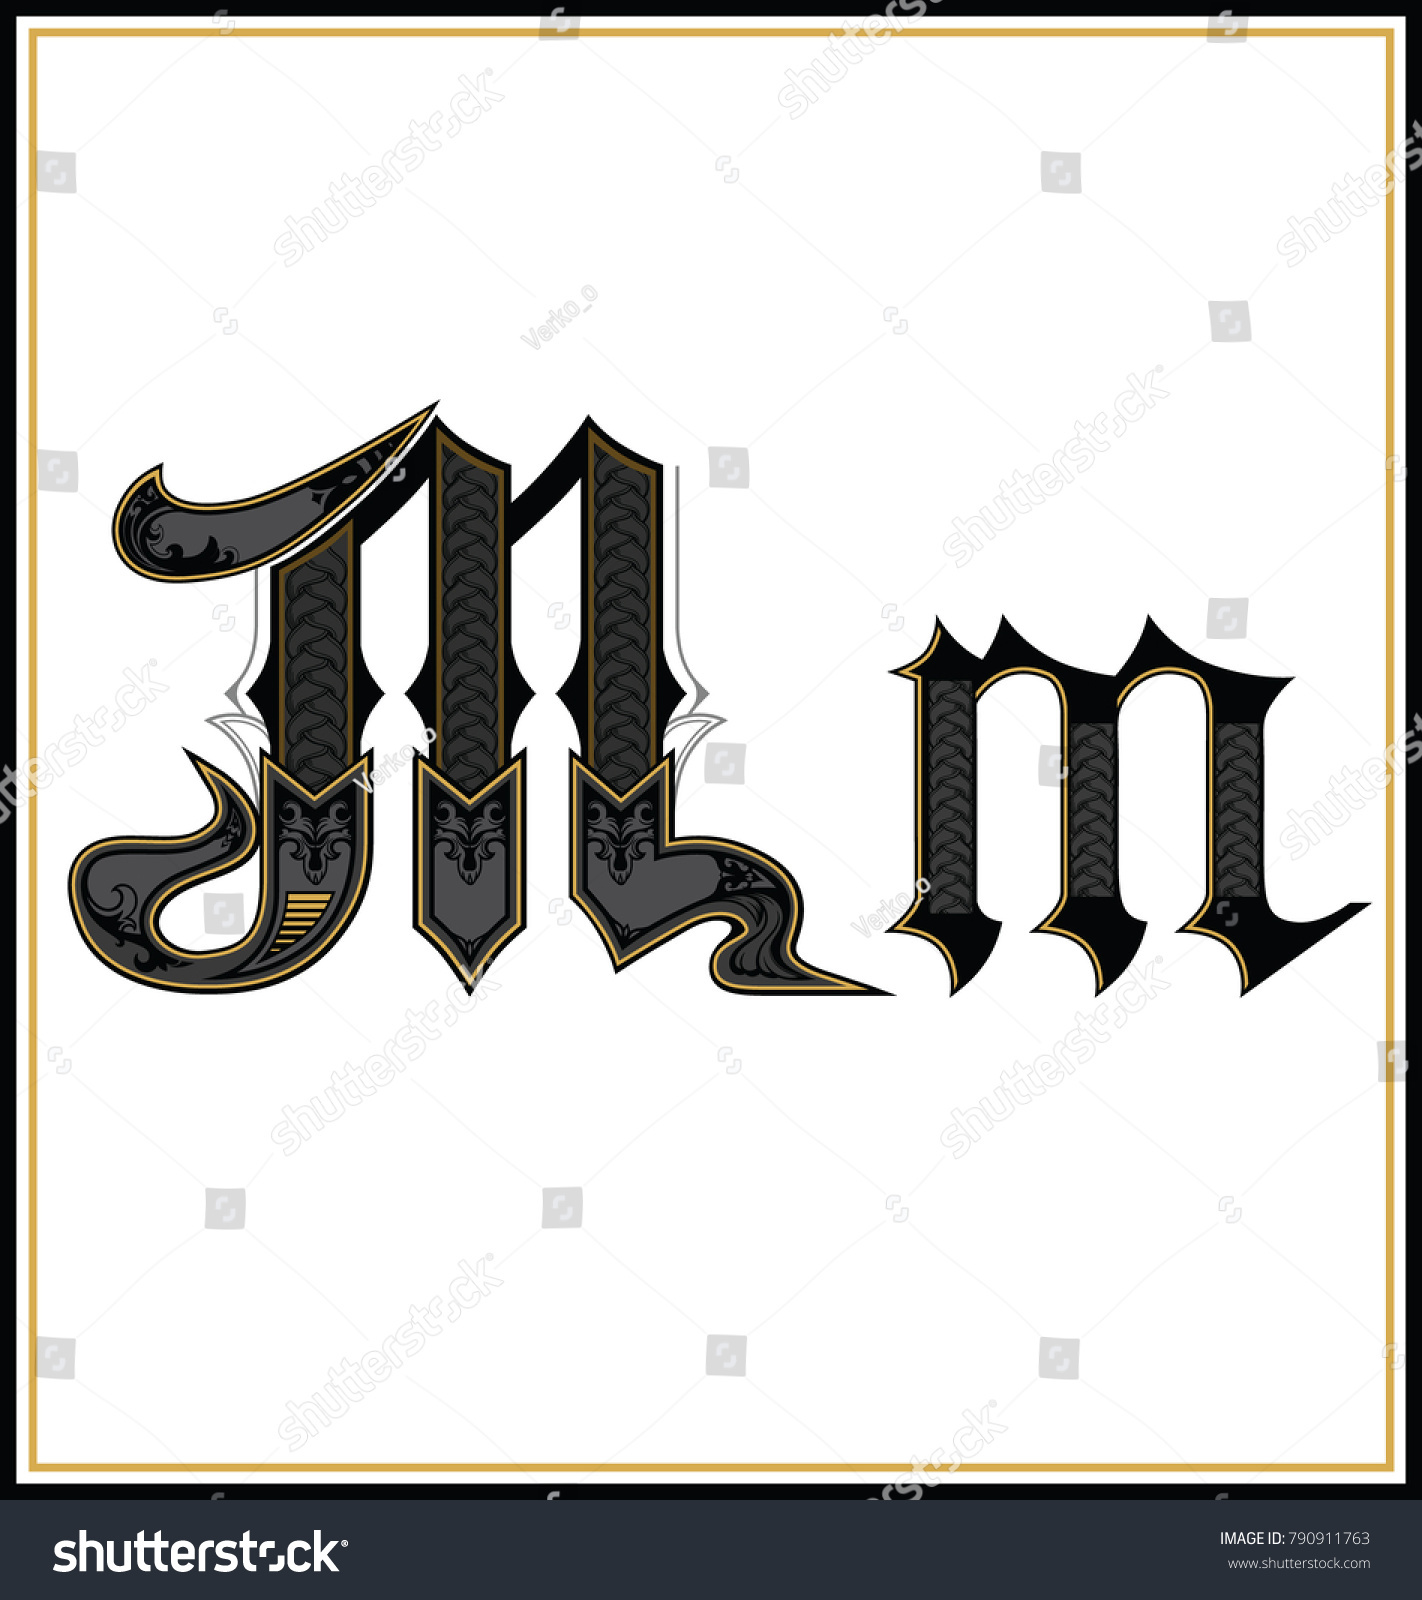 decorative gothic letter m small capital stock vector (royalty free